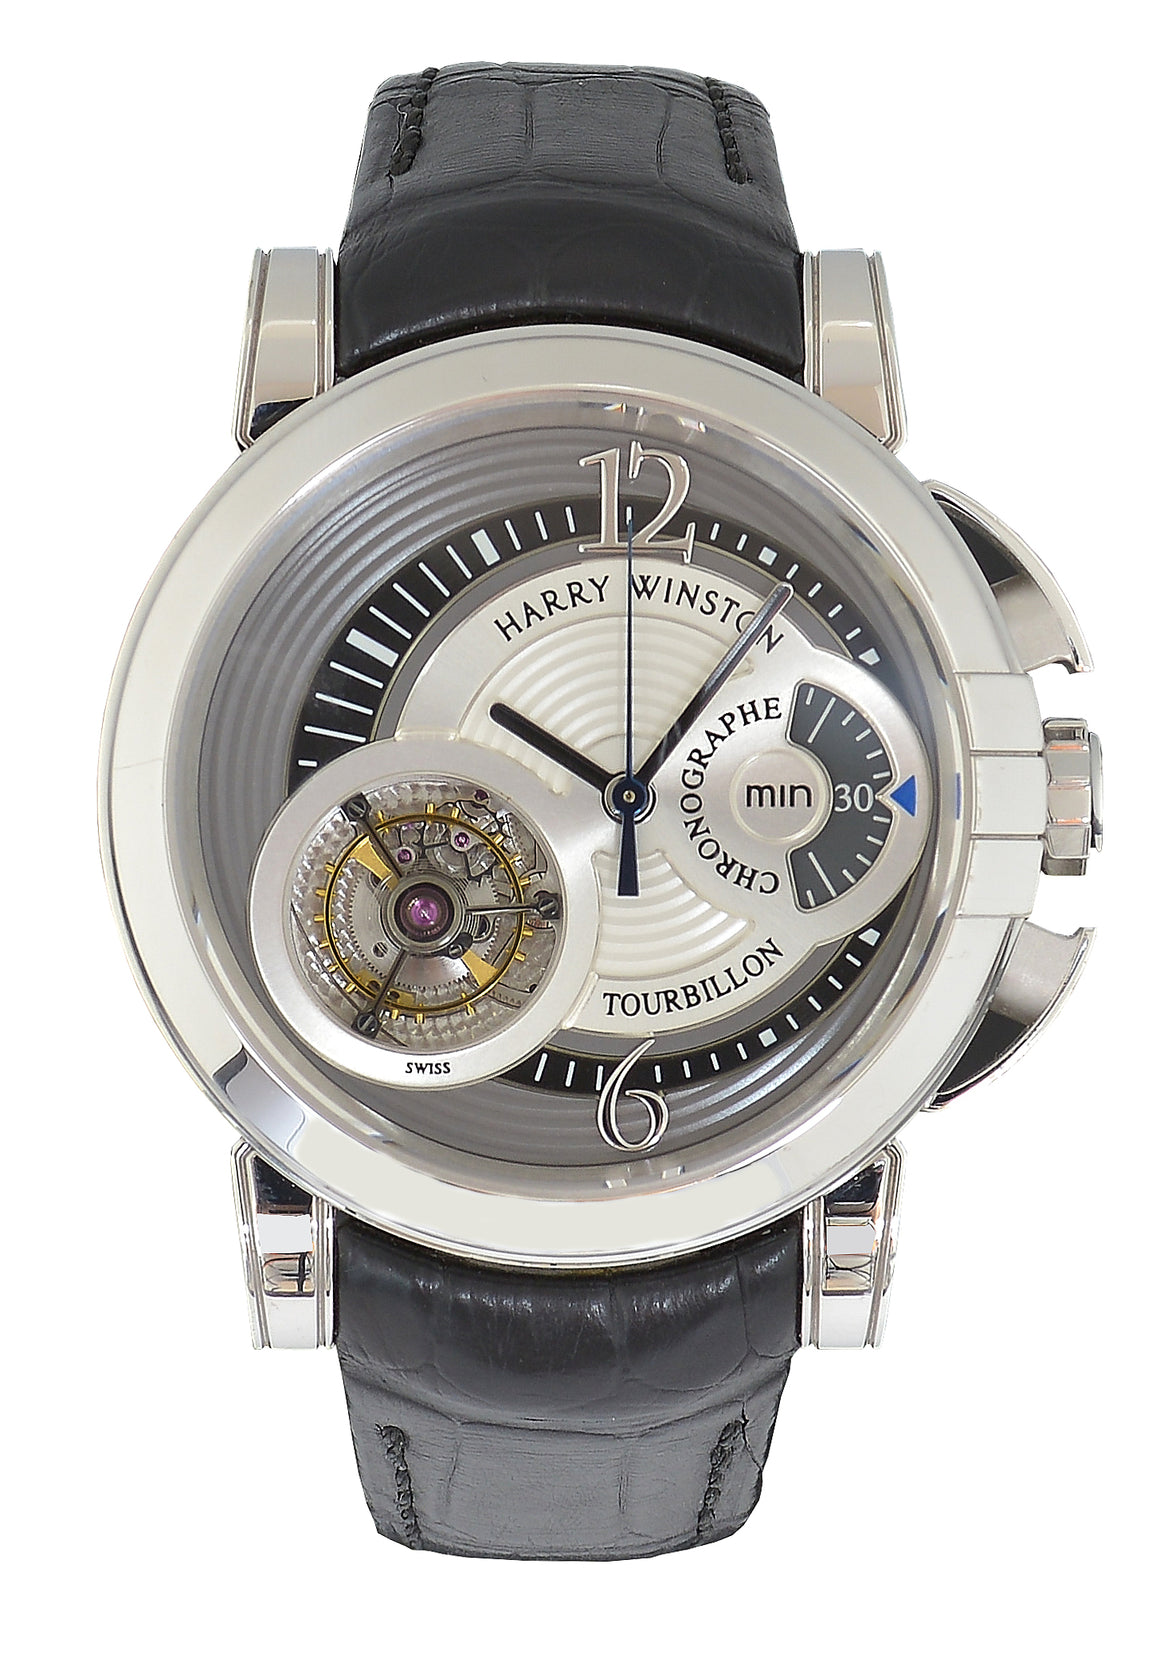 Harry Winston White Gold Midnight Tourbillon Chronograph Watch, 450-MMTC42W